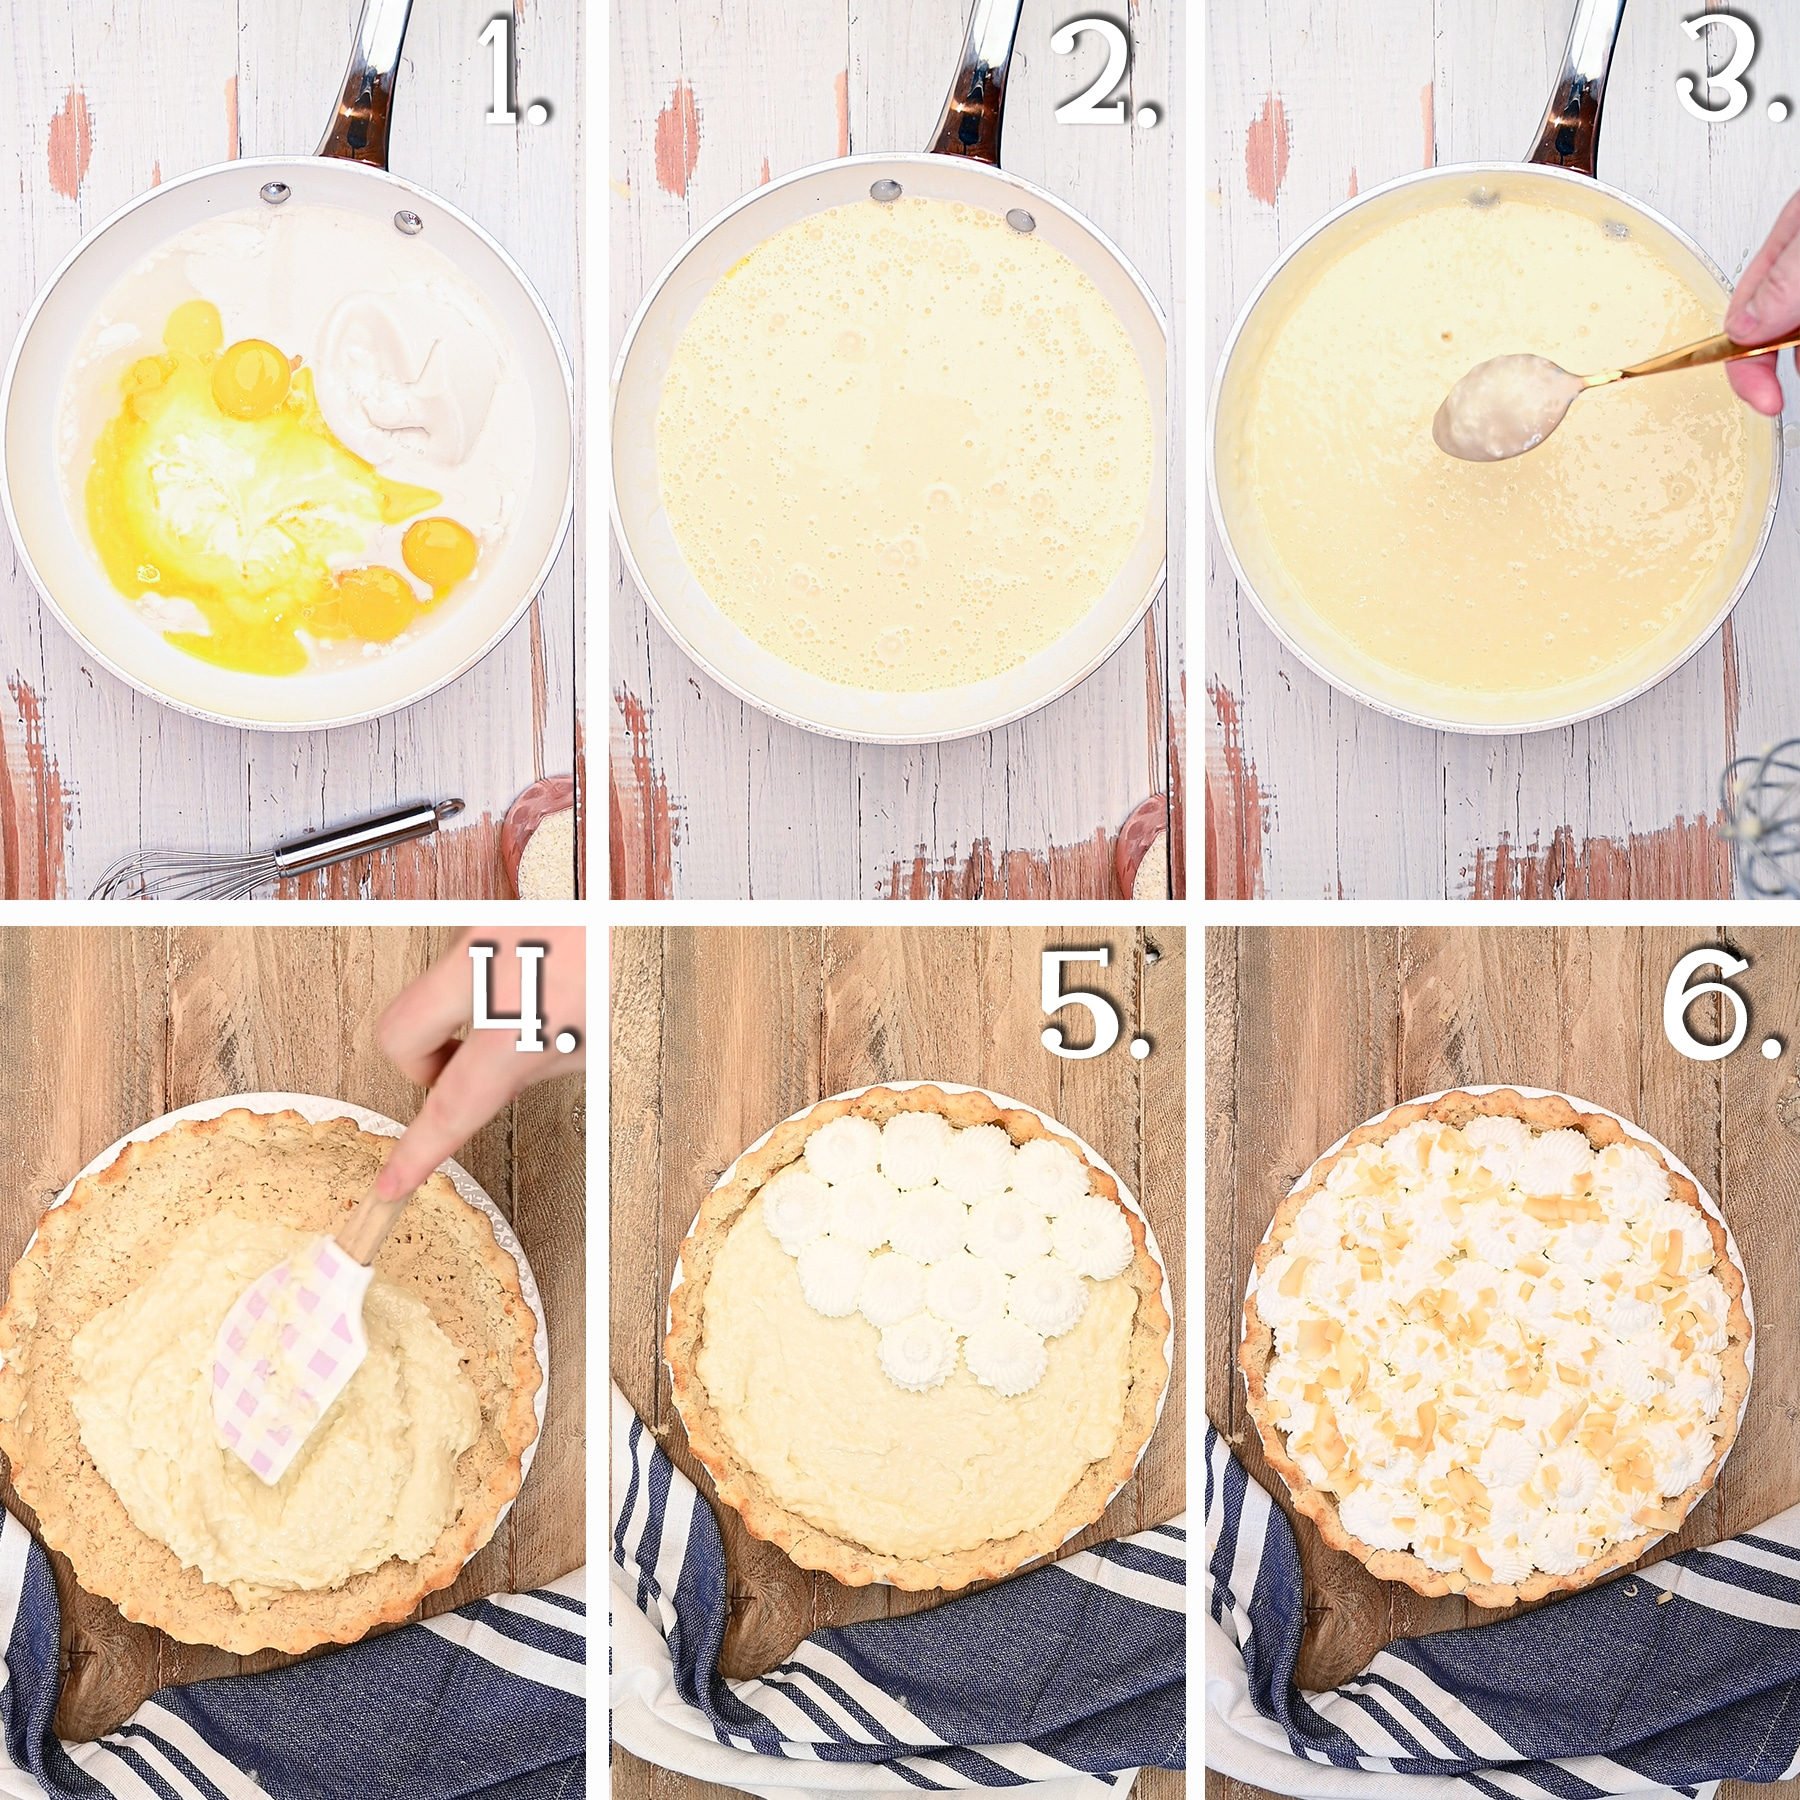 Six panel in process shot showing the time line between making the coconut cream pie filling, filling the crust, and topping it with whip cream stars and toasted coconut.